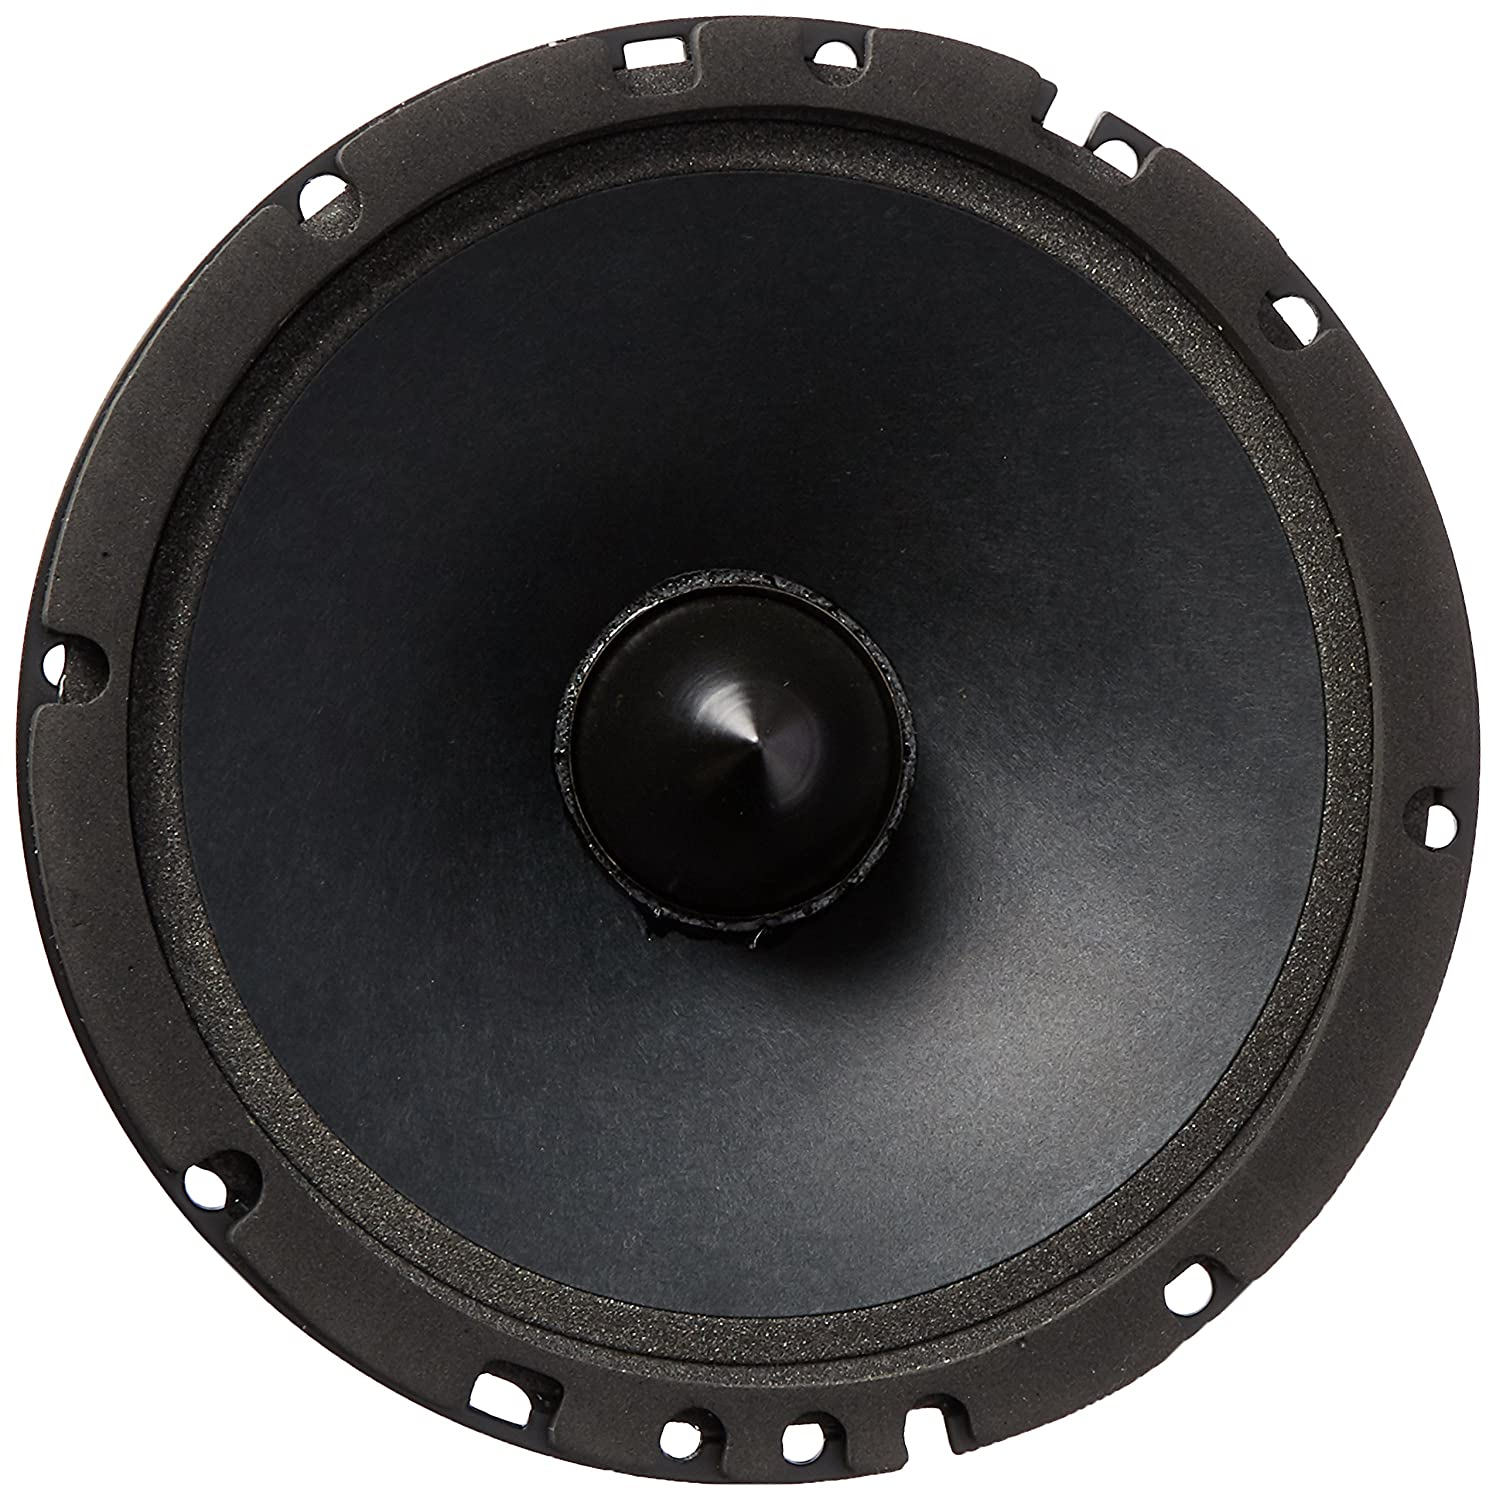 Beyma PRO65ND 6.5 200W Mid Bass Set of 1